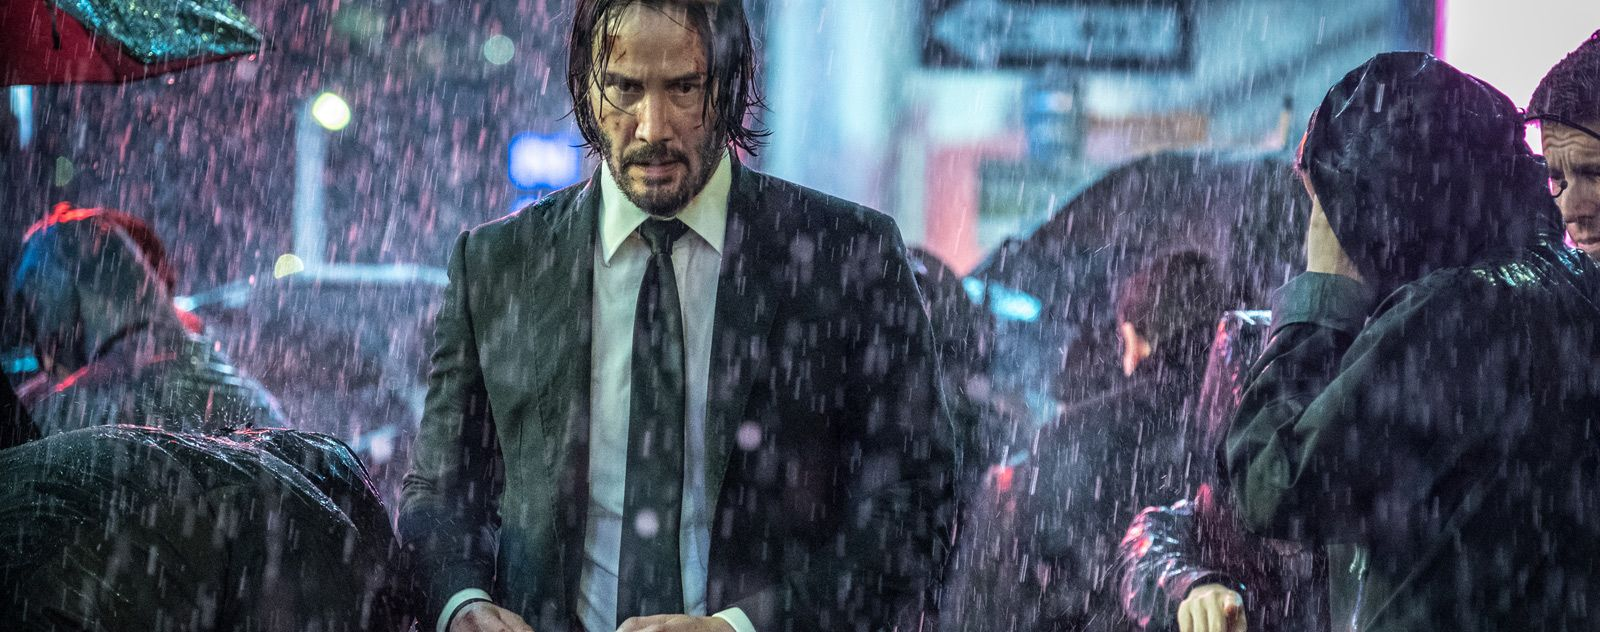 John Wick 4: martial arts legend joins Keanu Reeves to smash mouths